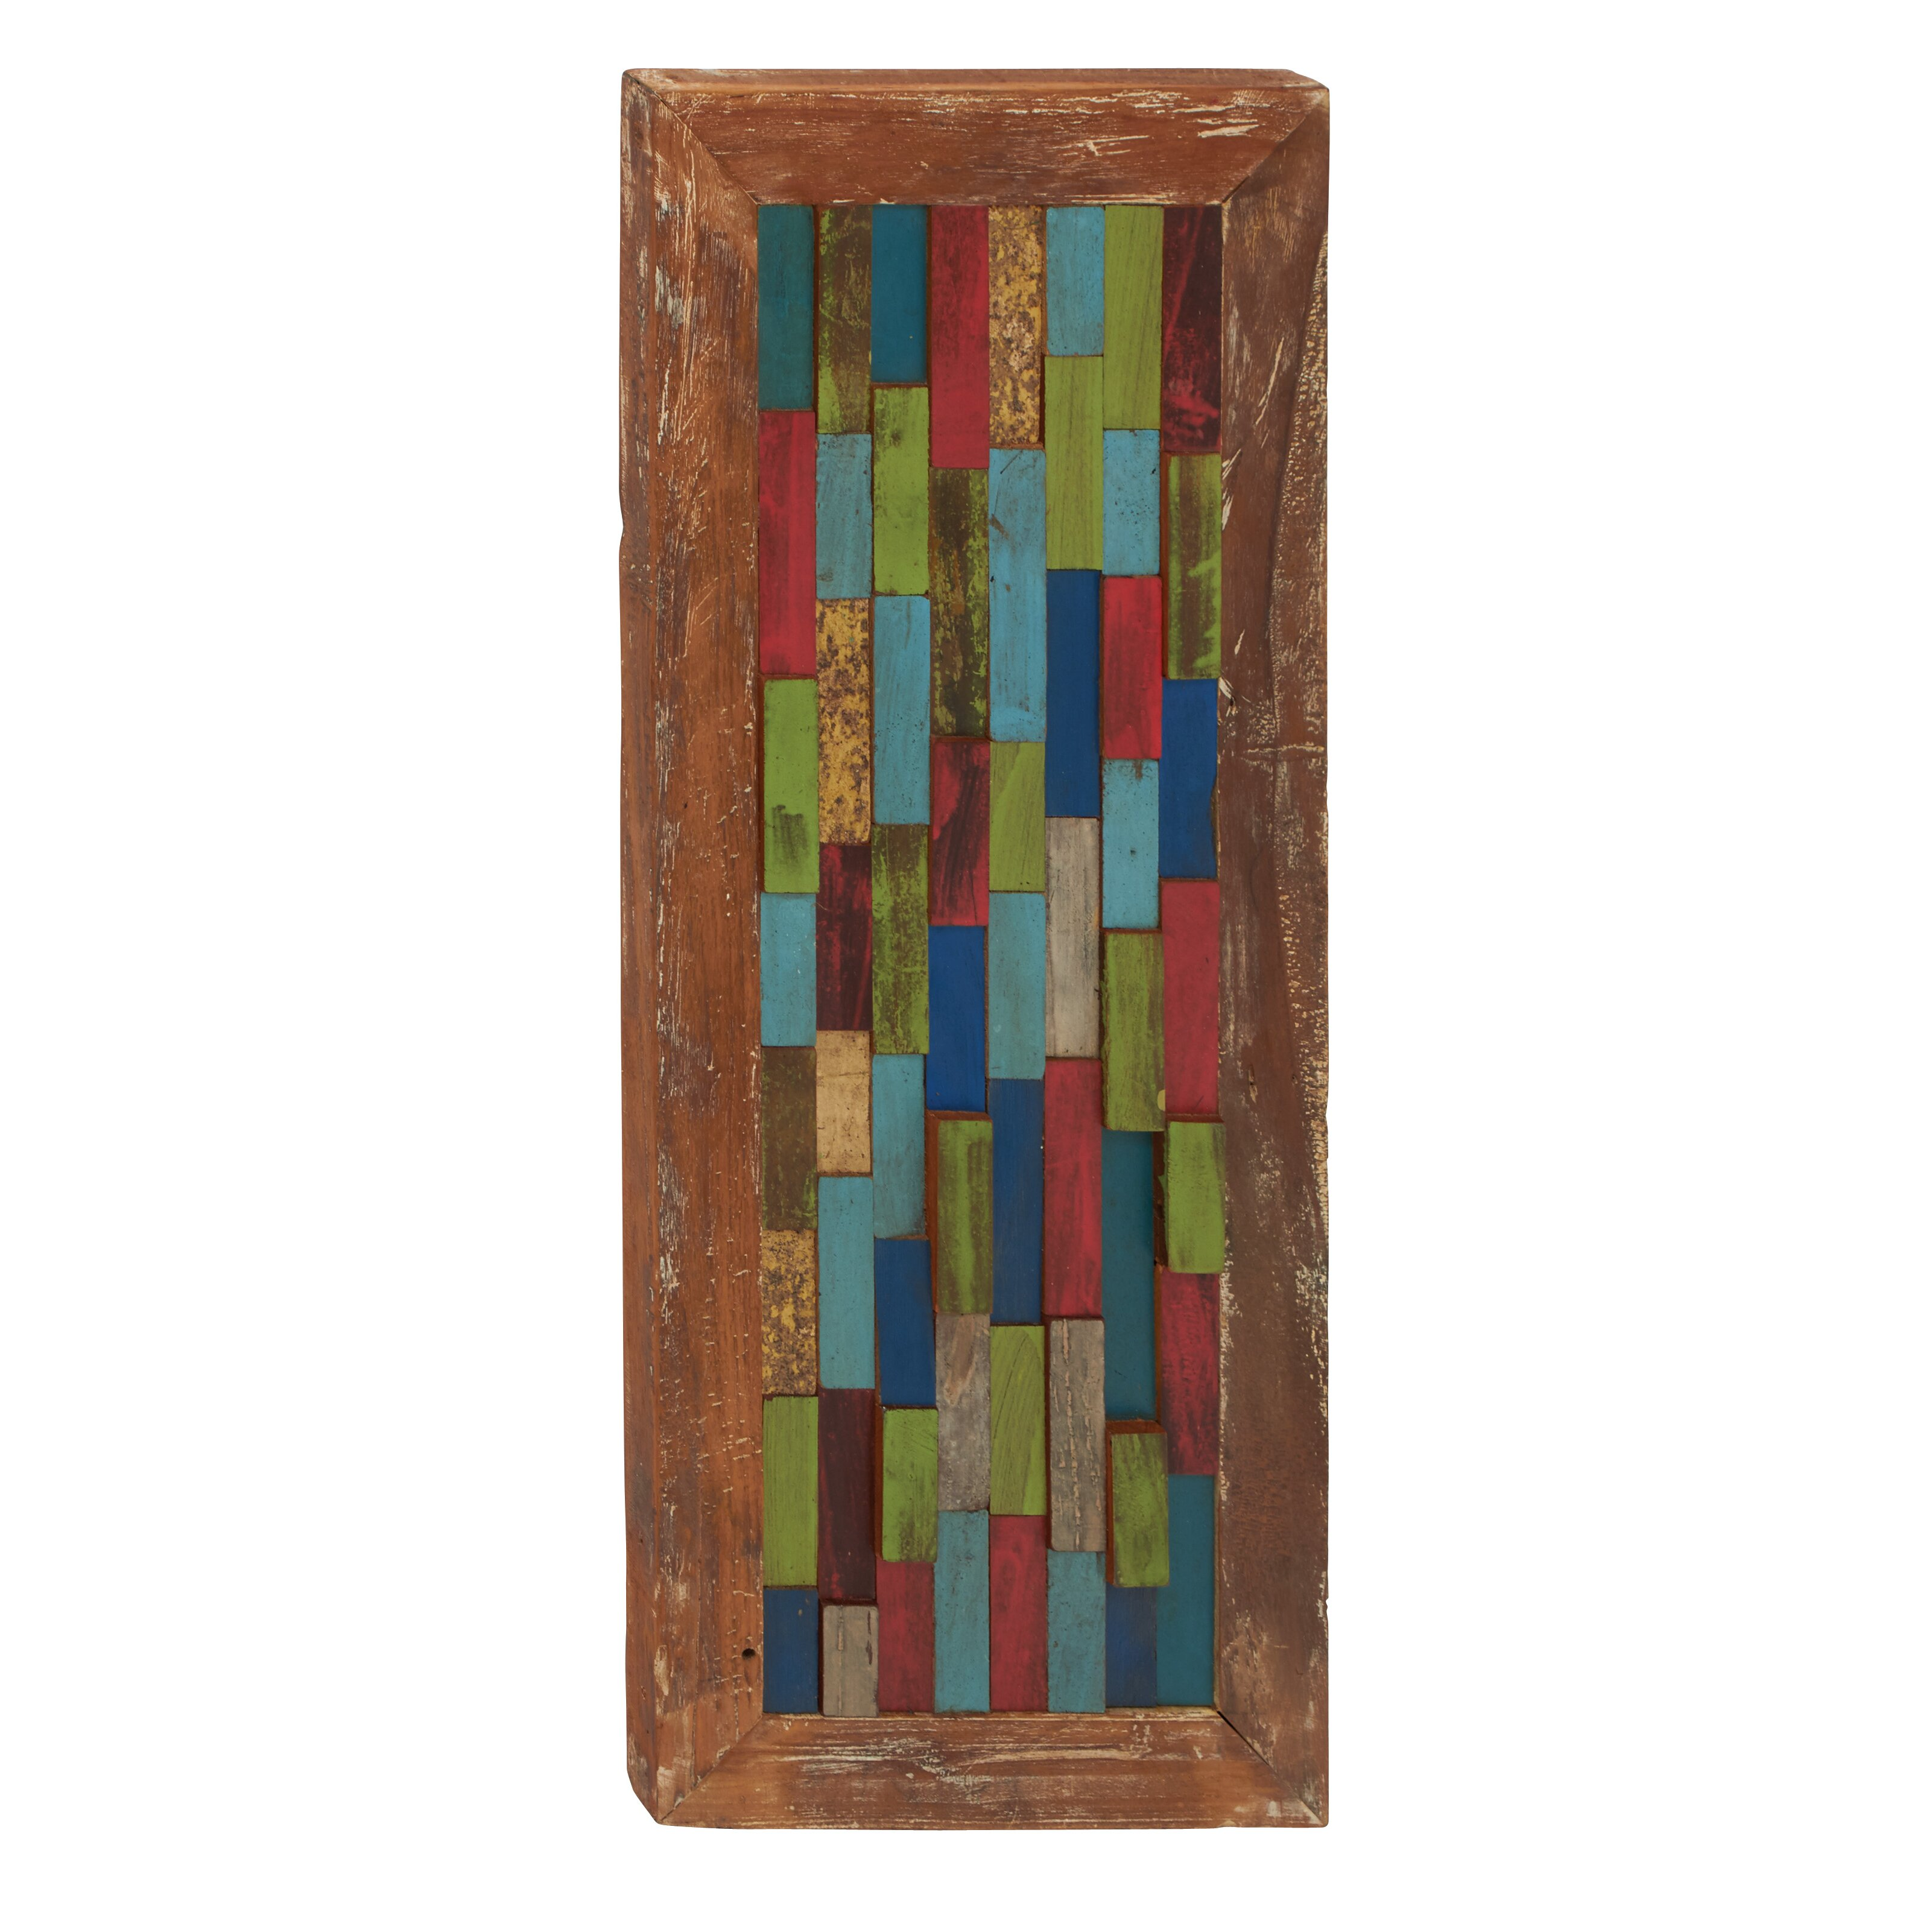 Panel Wall D Cor By Woodland Imports: Woodland Imports Simply Beautiful Panel Wall Décor